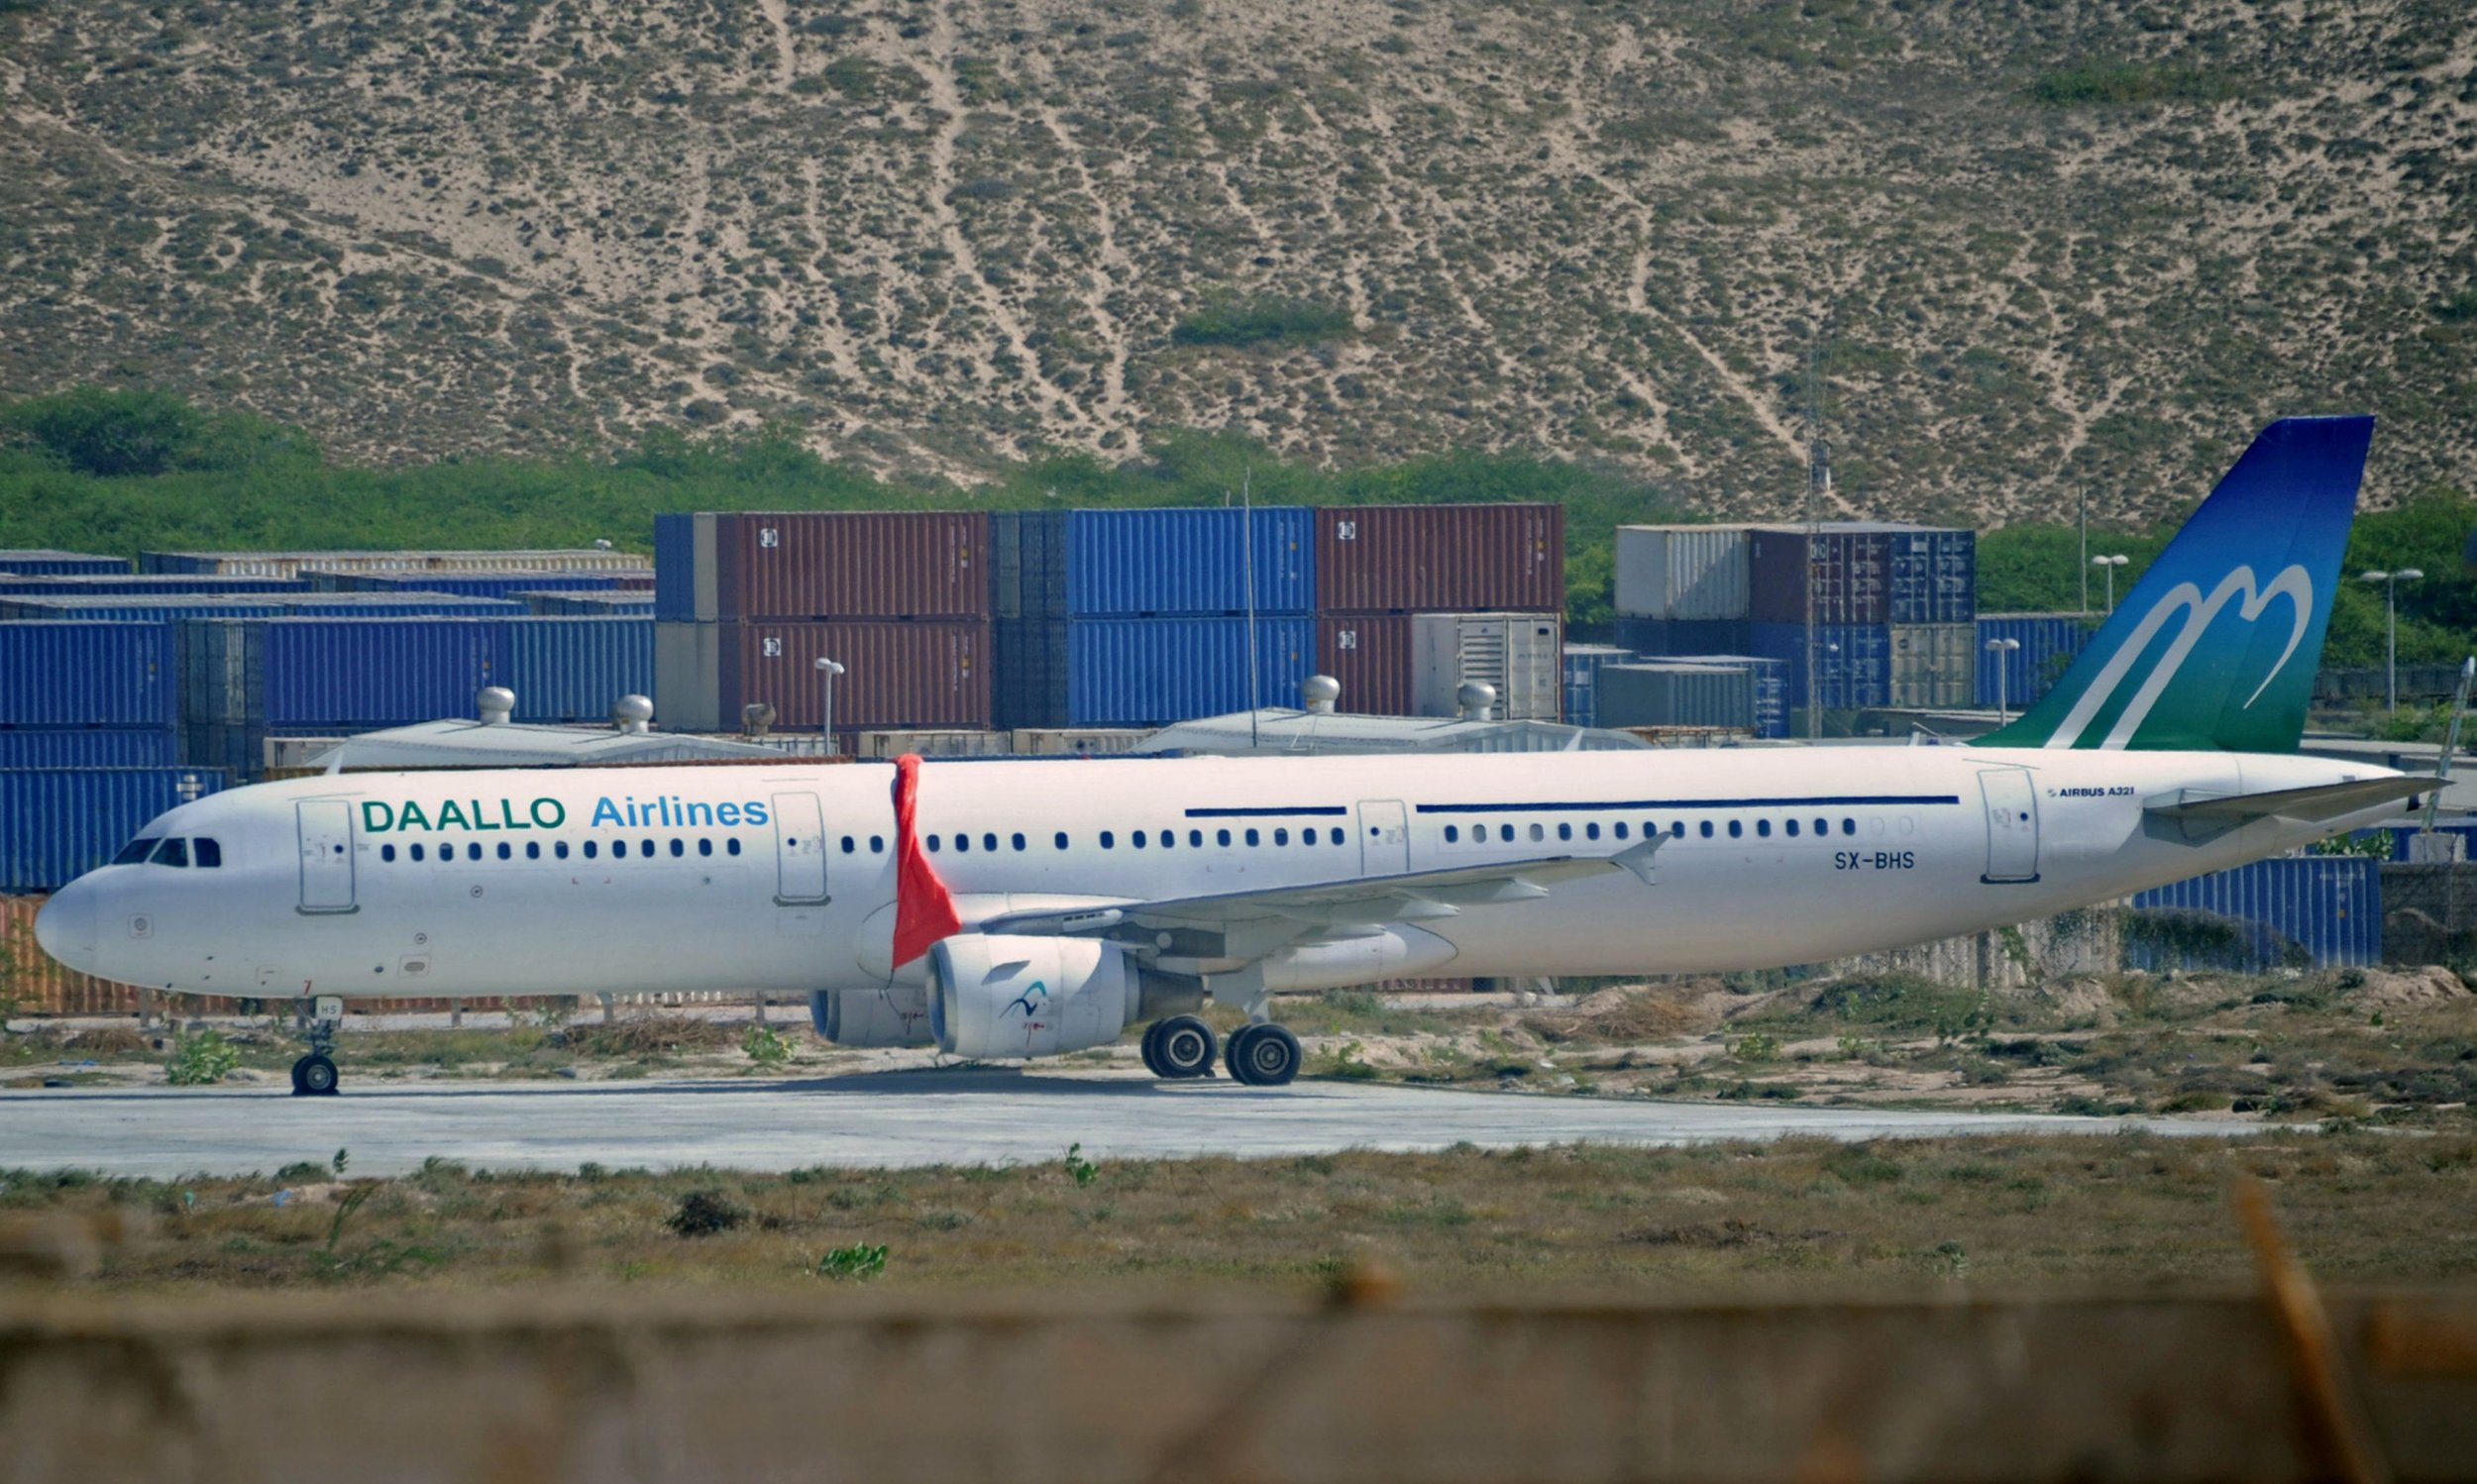 A Daallo Airlines flight sits in Mogadishu after Al-Shabab tried to blow it up.